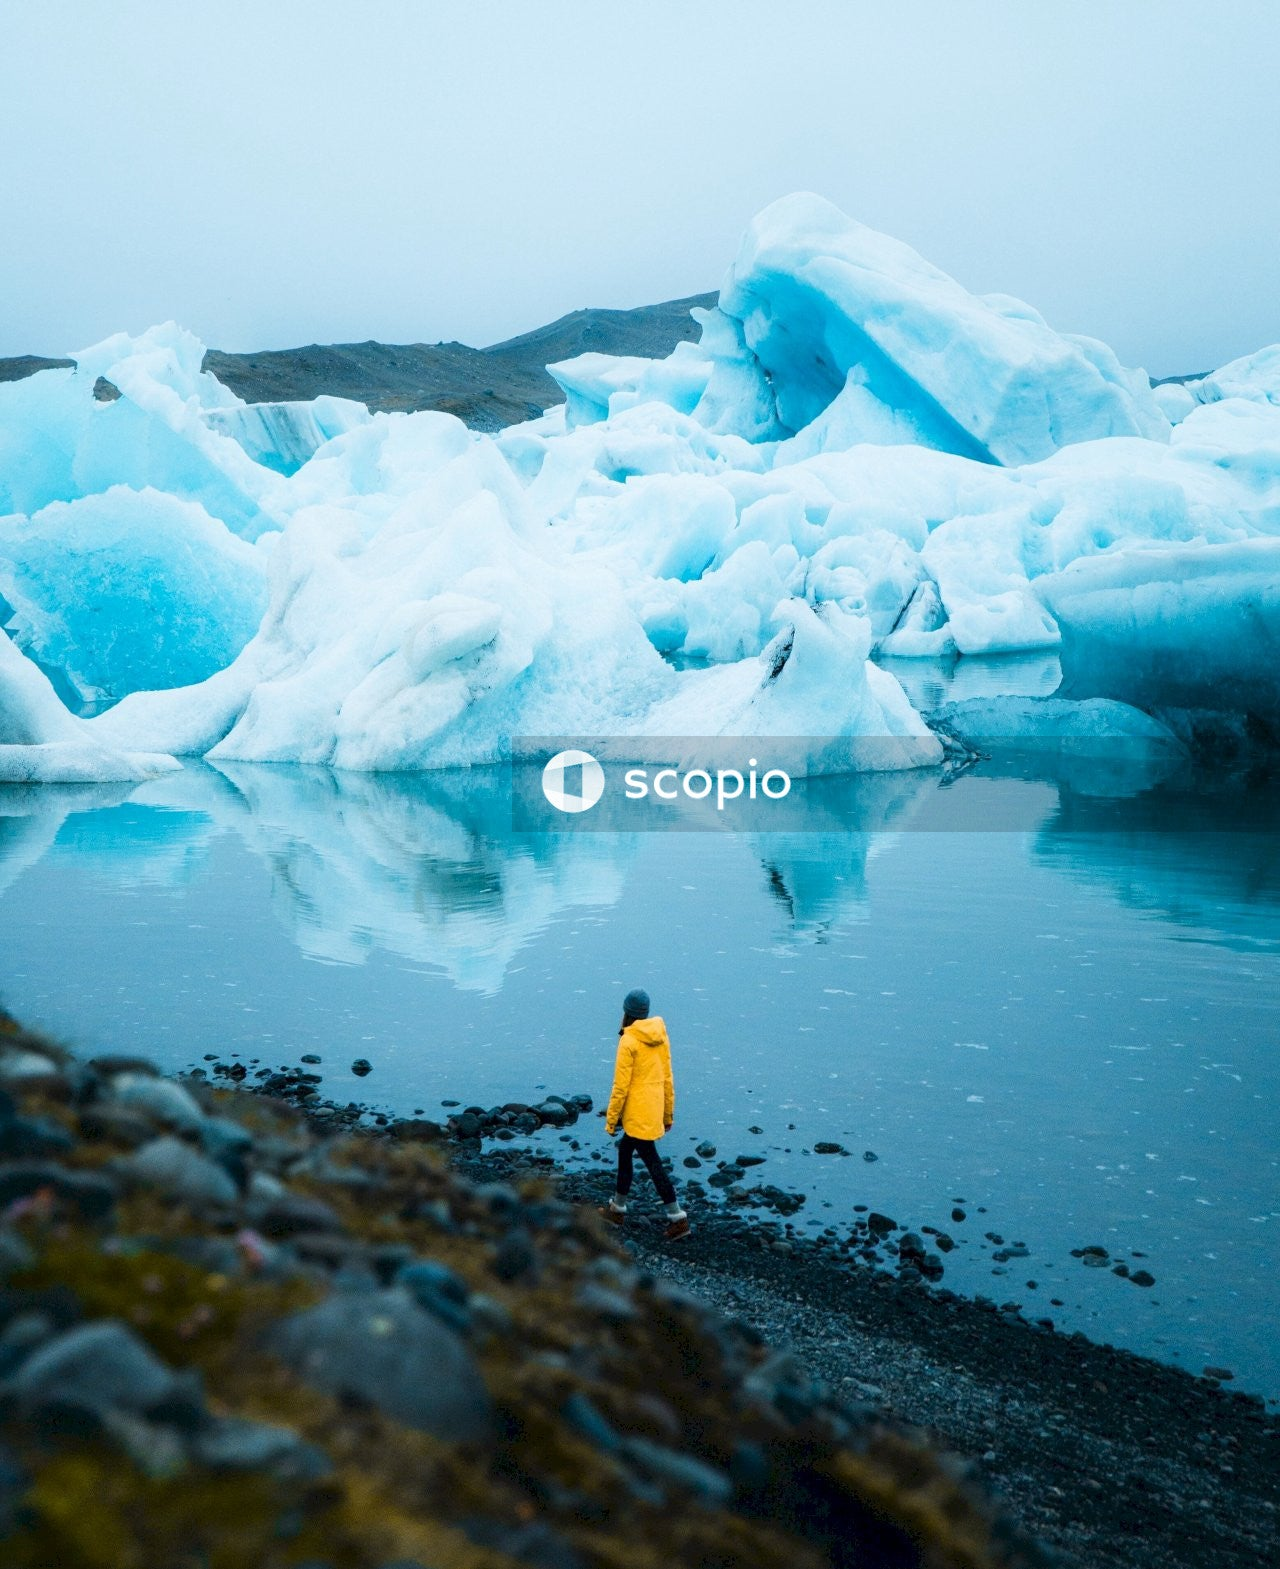 Person in yellow jacket standing on rock near ice formation